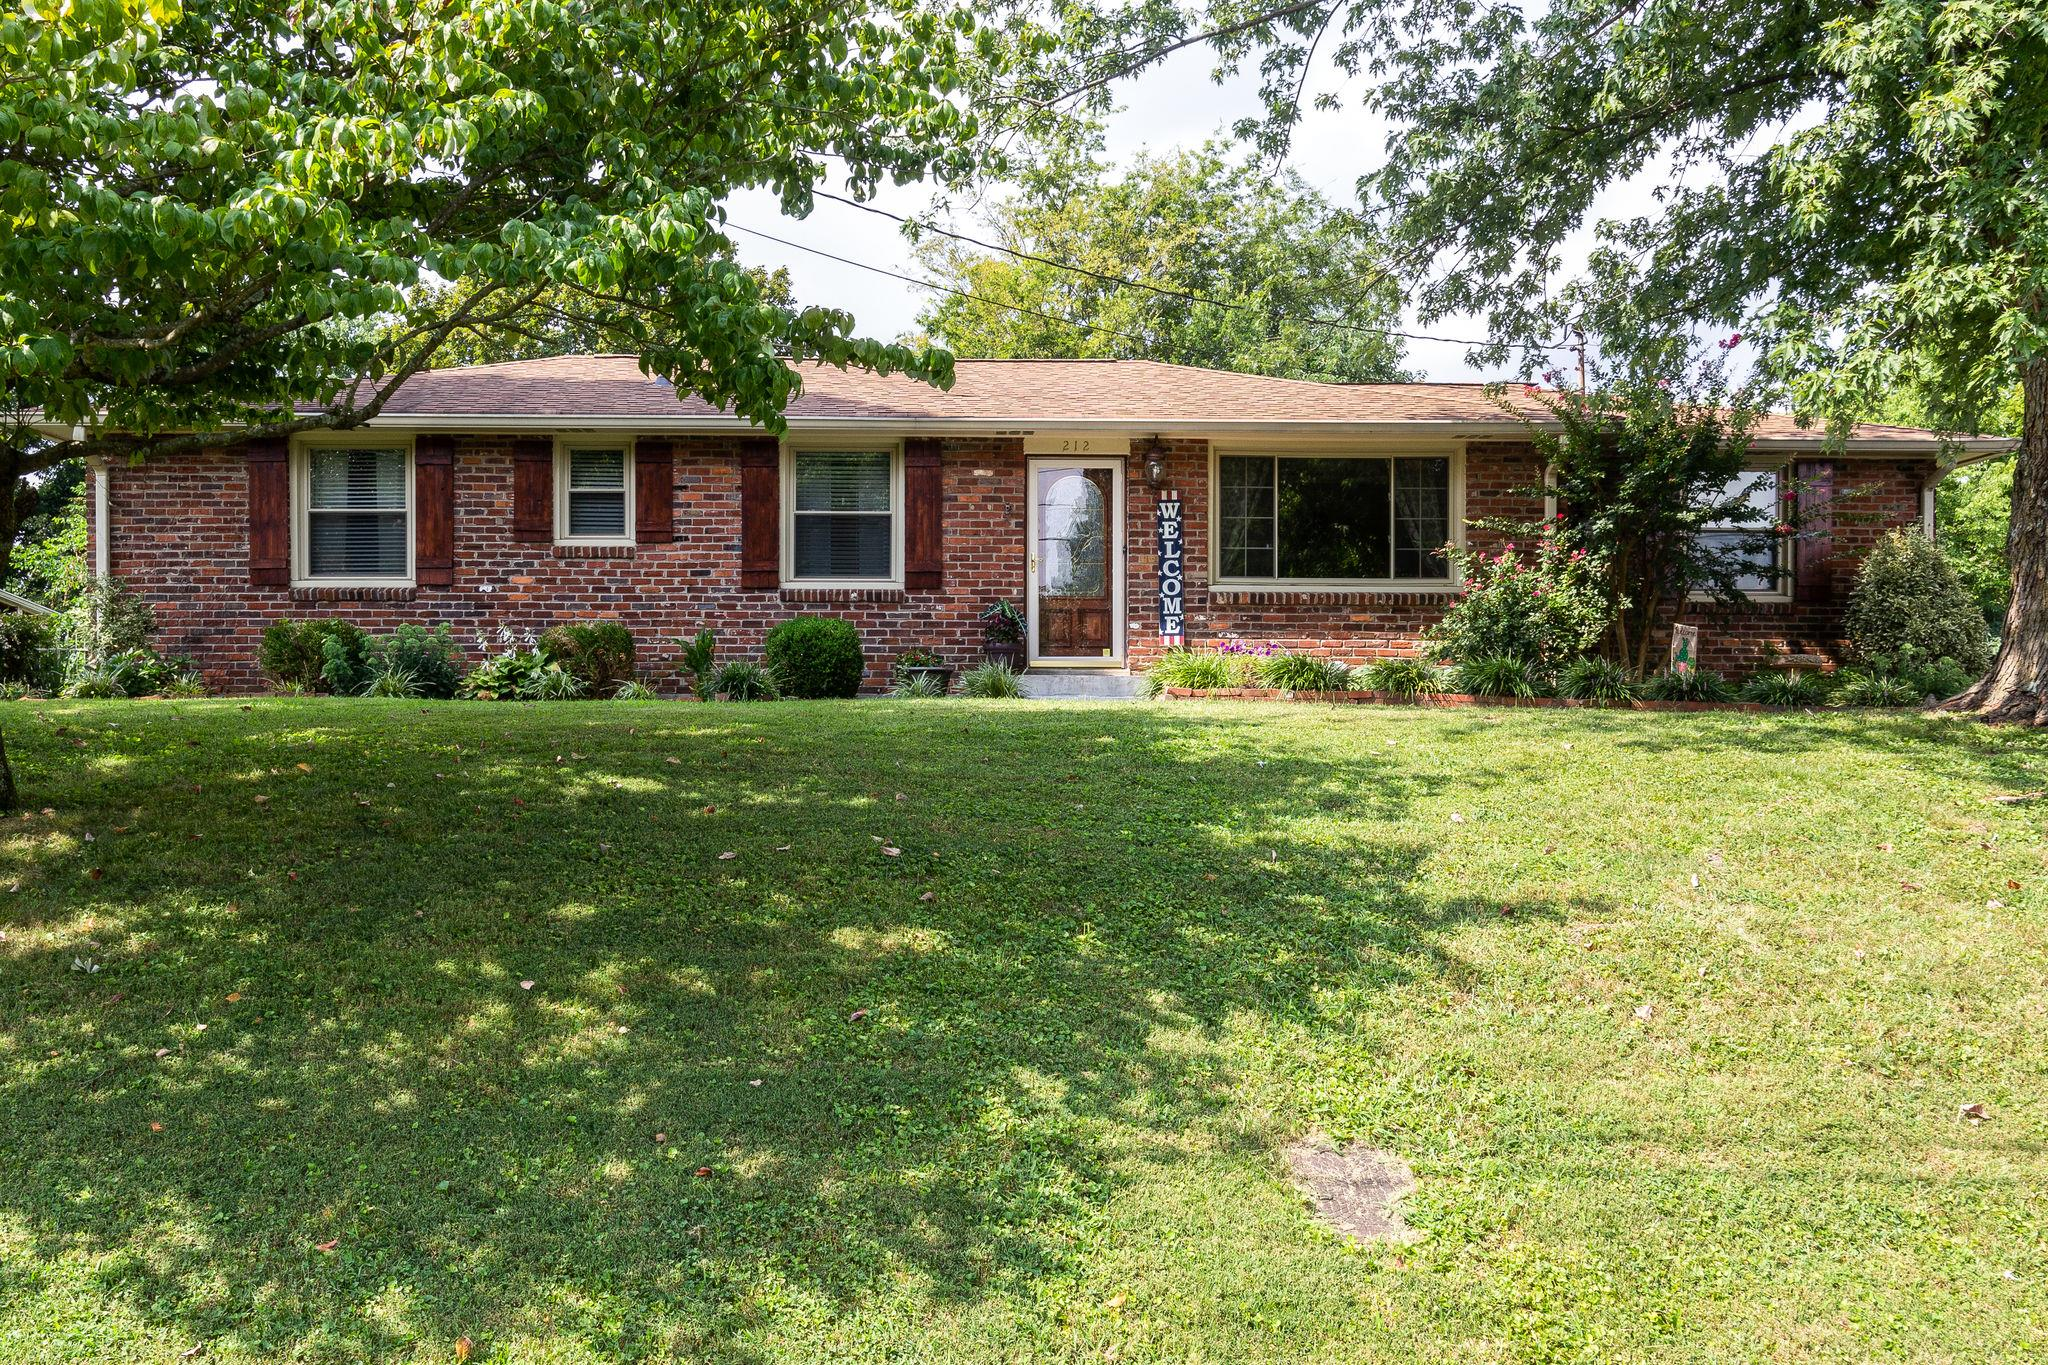 212 Bonnaoaks Dr, Hermitage in Davidson County County, TN 37076 Home for Sale